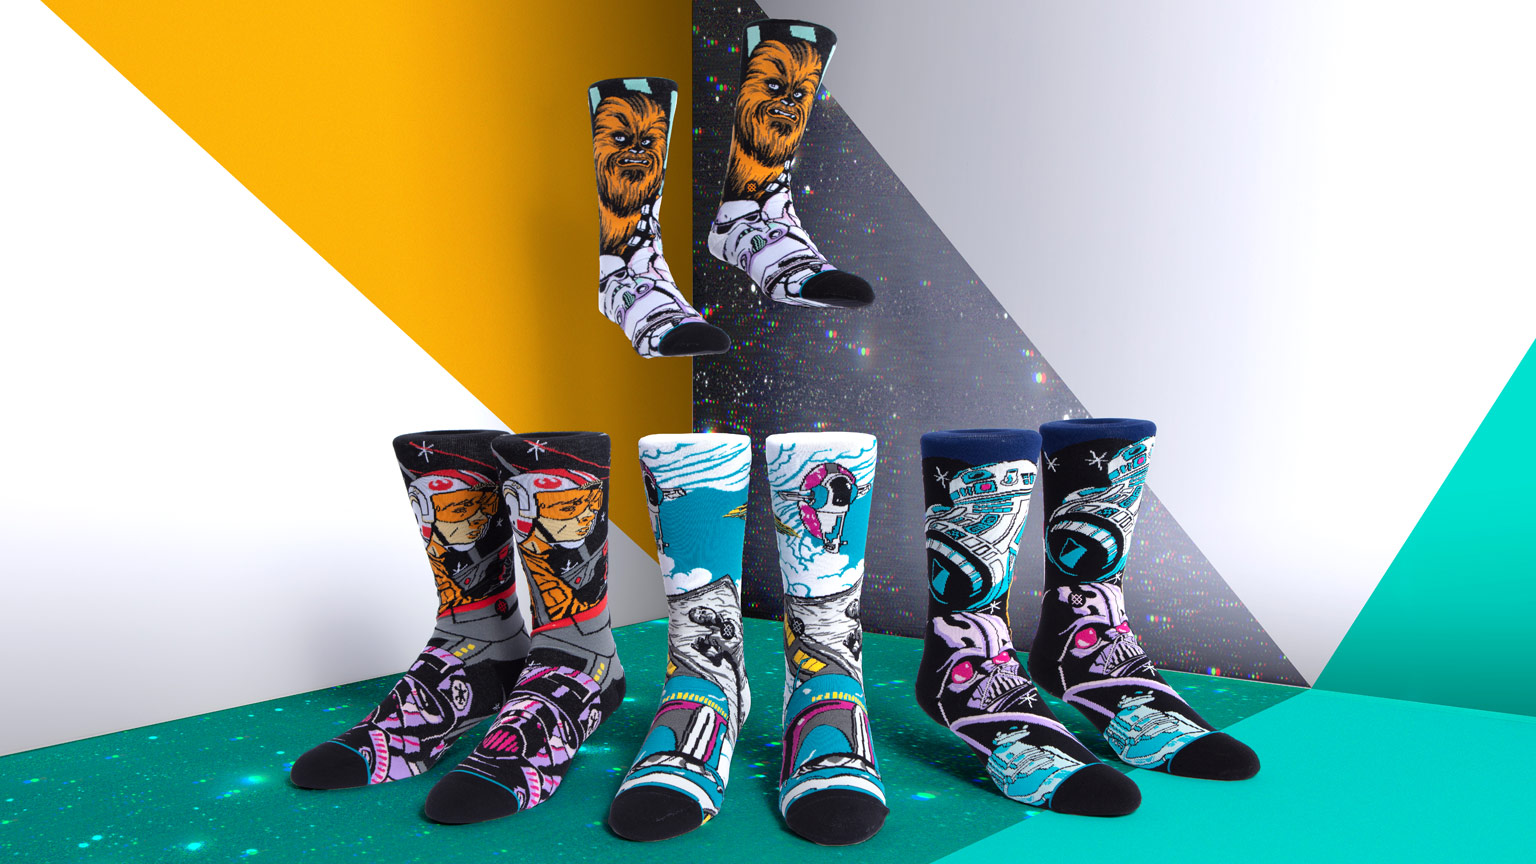 Show Your Star Wars Style With the New Bold and Colorful Holiday Collection from Stance